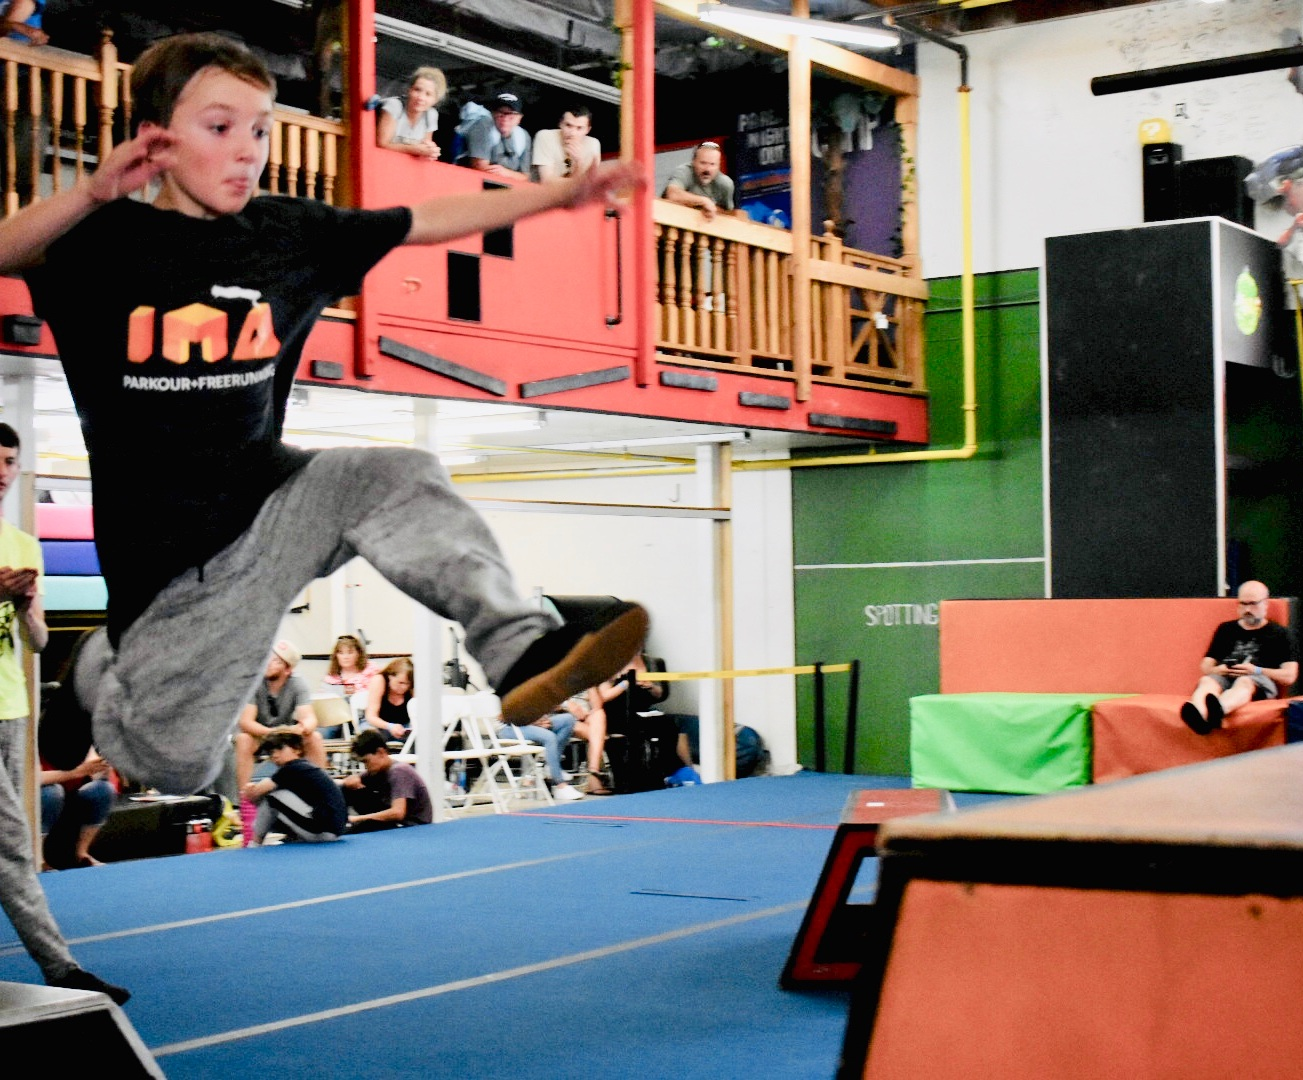 IMA student athlete Rhys Nutter competing in a Speed event during the West Coast Parkour Championships in Santa Ana.